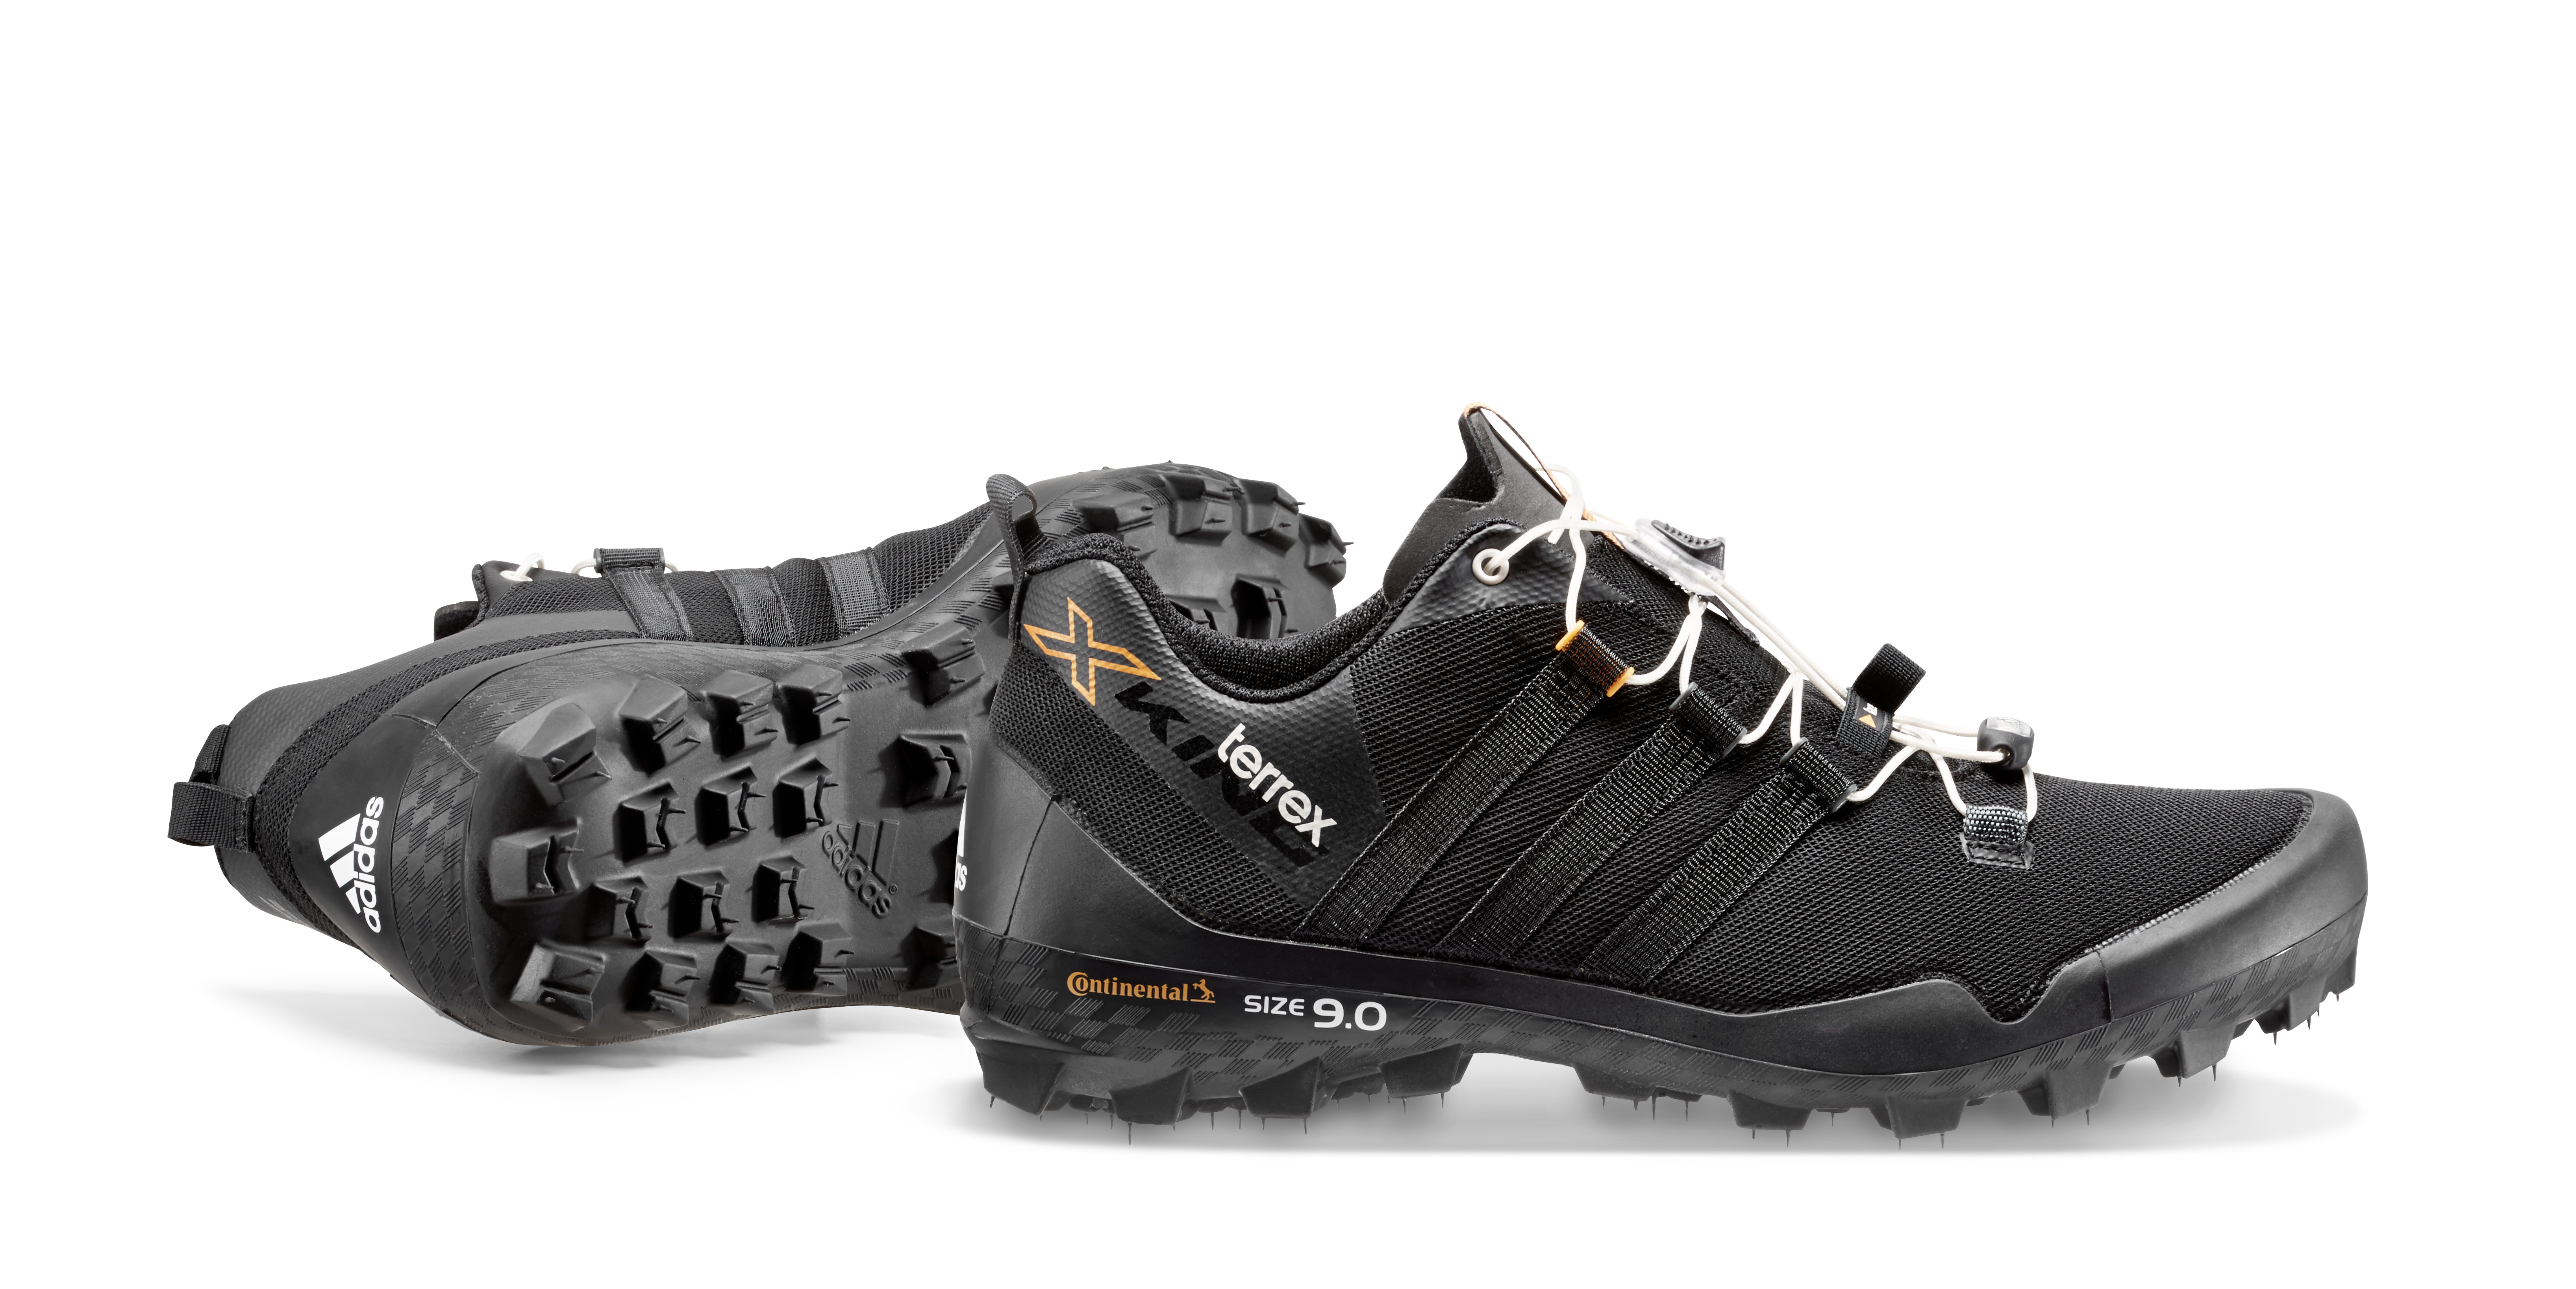 e3ab65fa690 Adidas Outdoor Terrex Fast X Hiking Shoes Review – The GearCaster